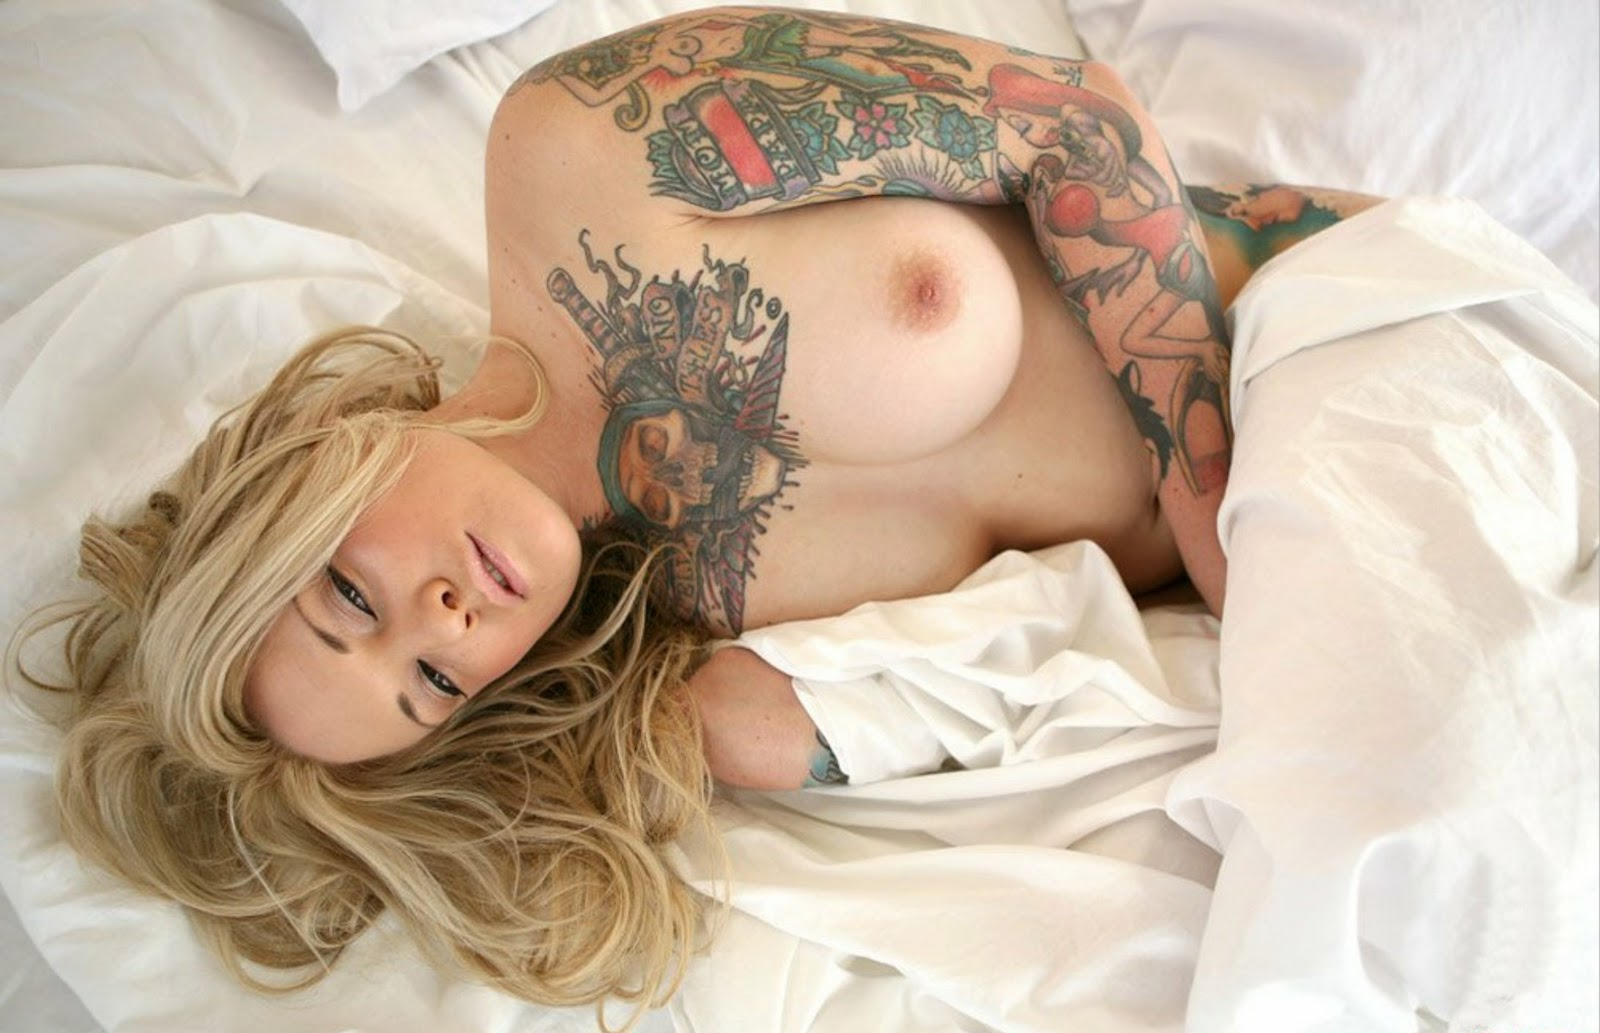 Hot Sey Naked Girls With Tattoos